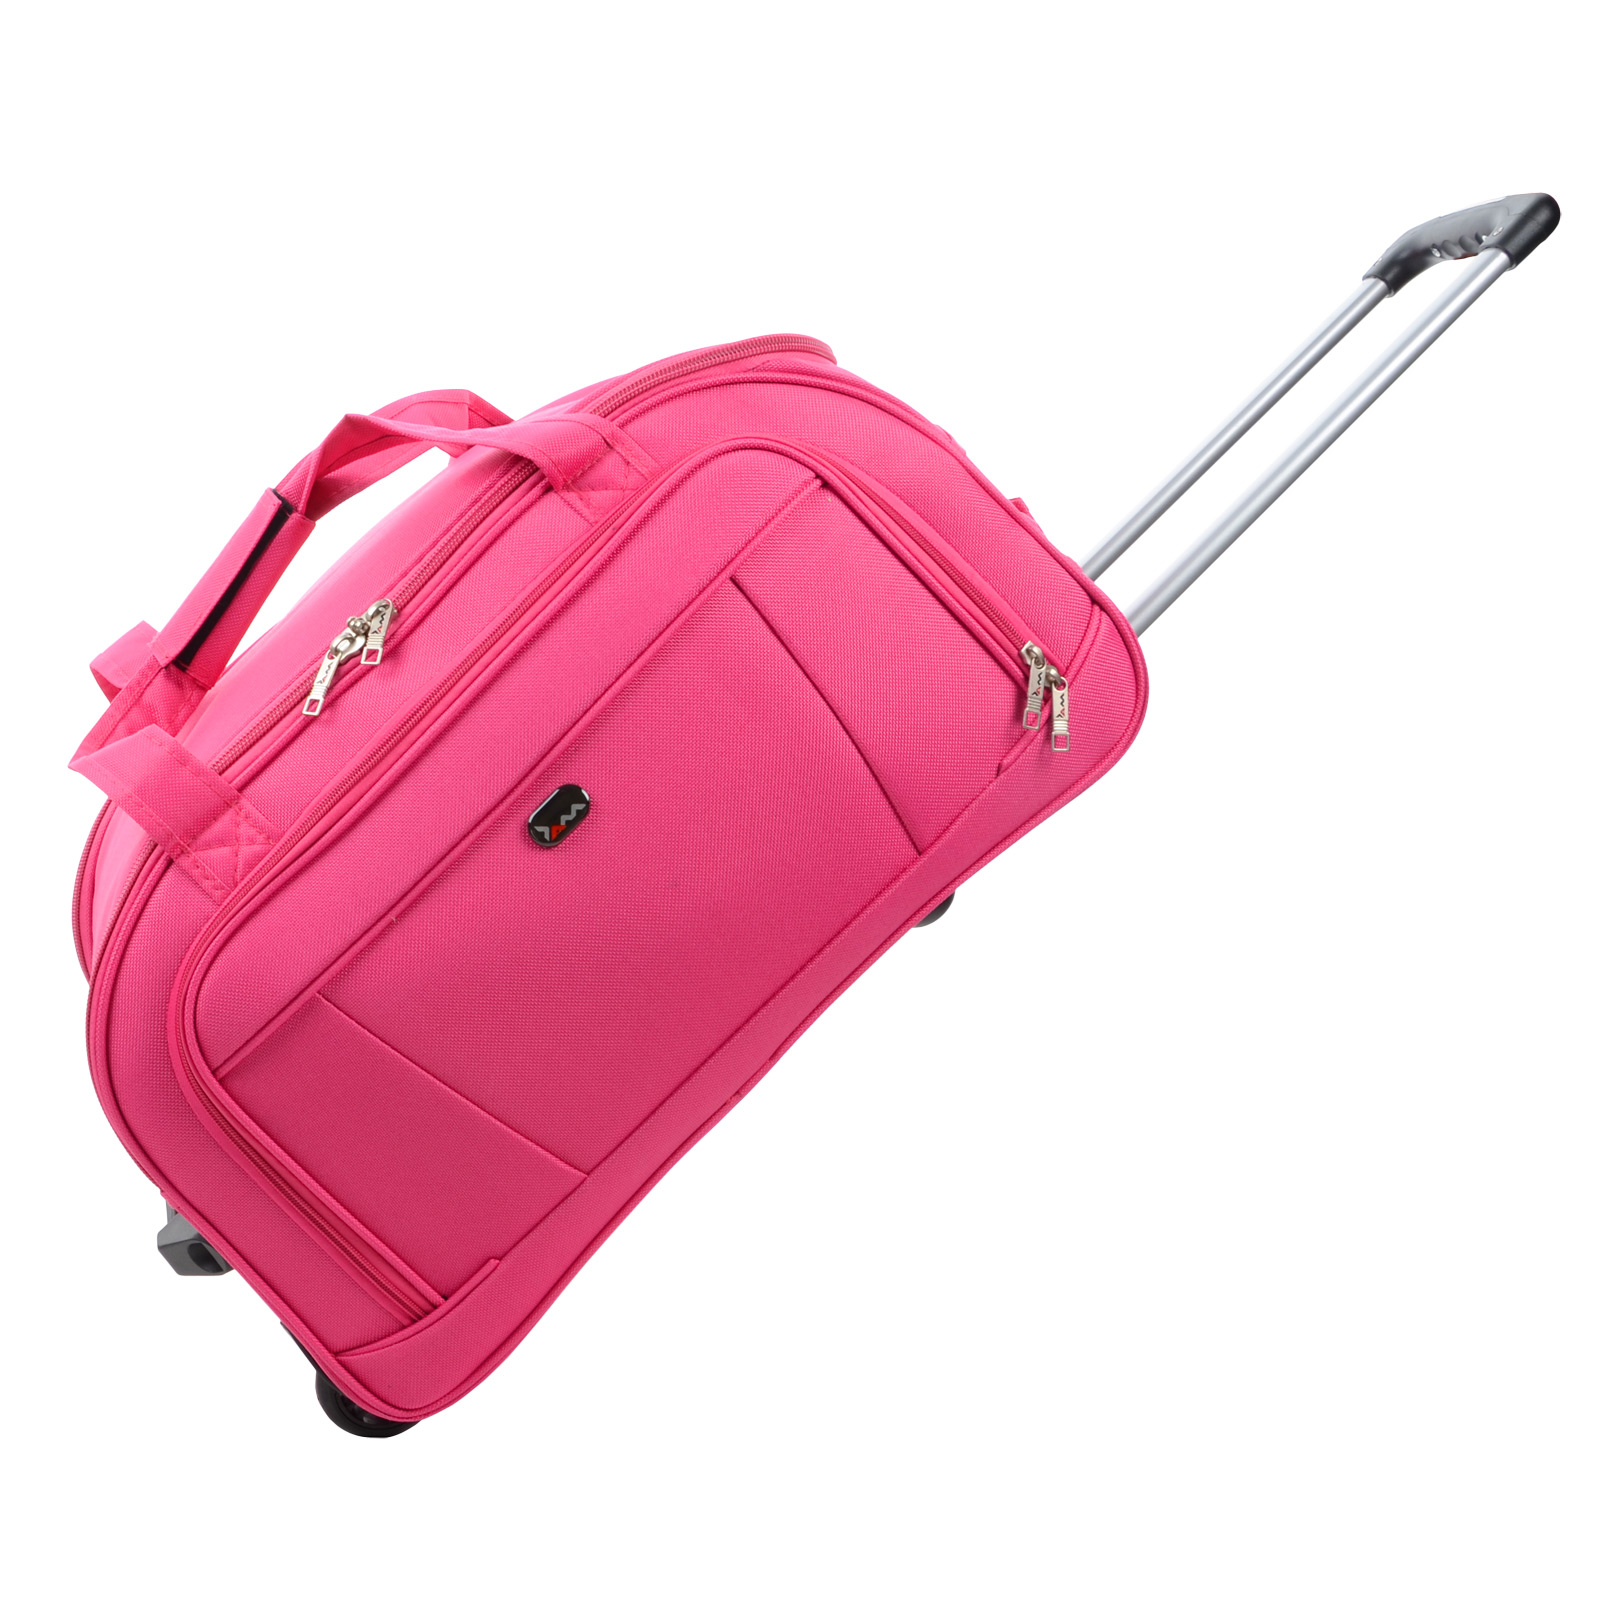 JAM Traveller Trolley Holdall Bag Pink- 3 Sizes Or Set Luggage ...